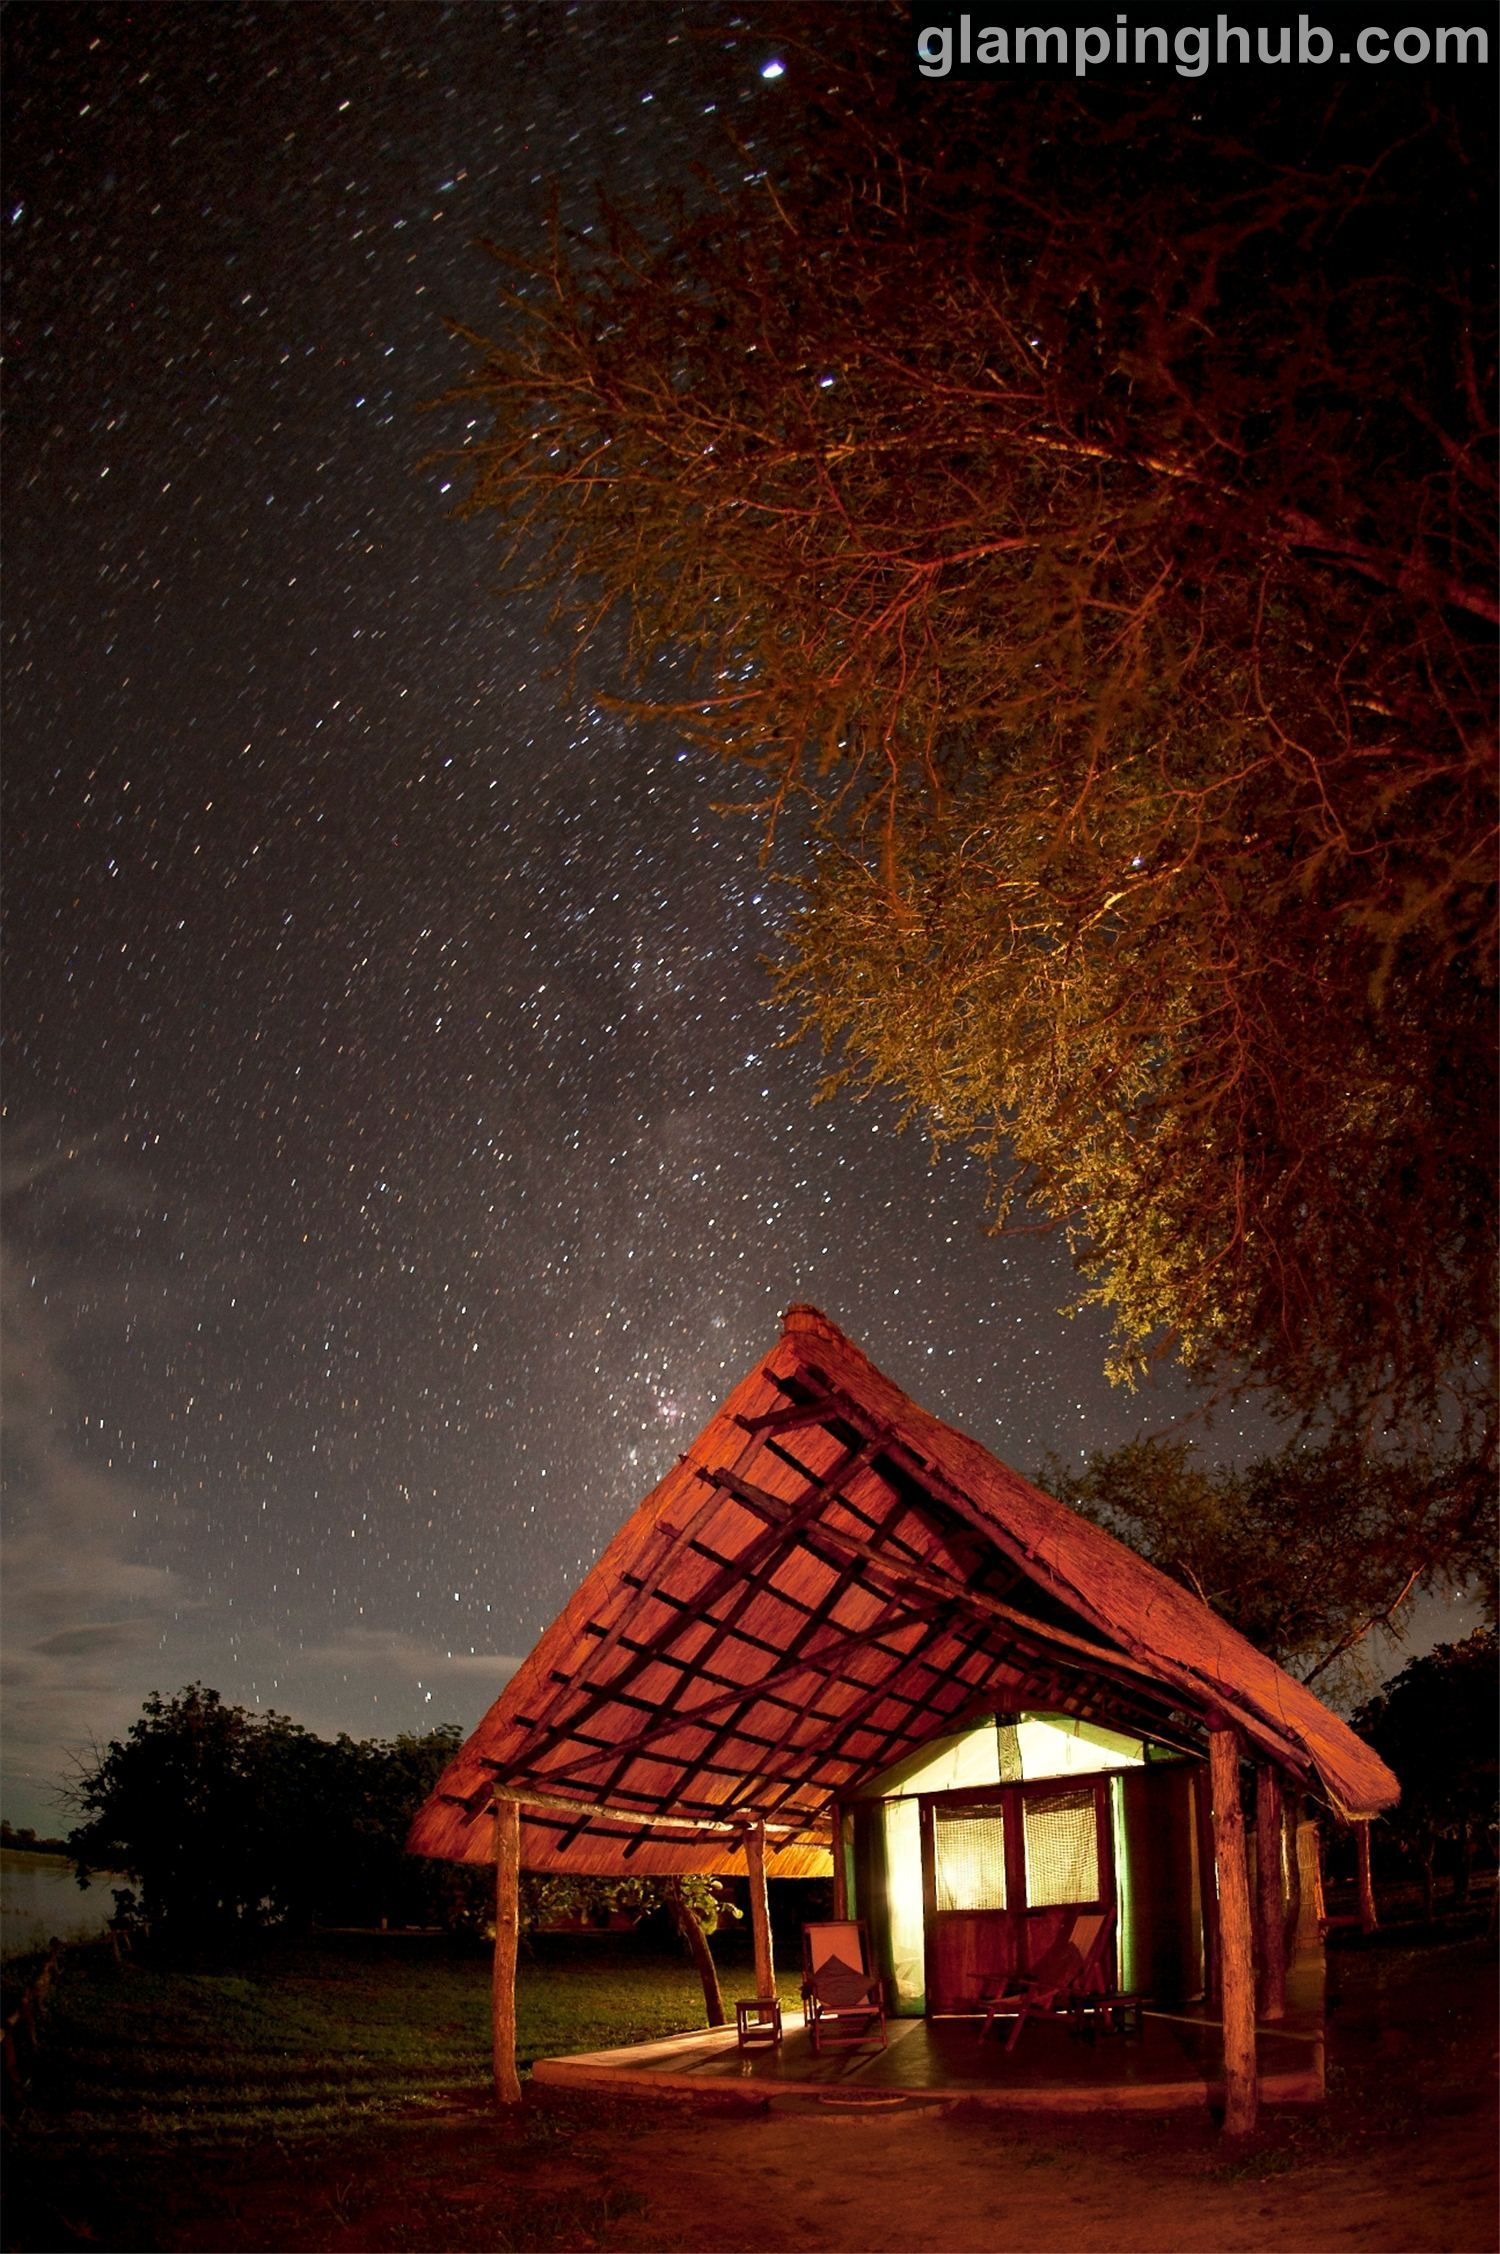 Luxury Tents Zambia | #glamping South Luangwa National Park | safari tents Africa